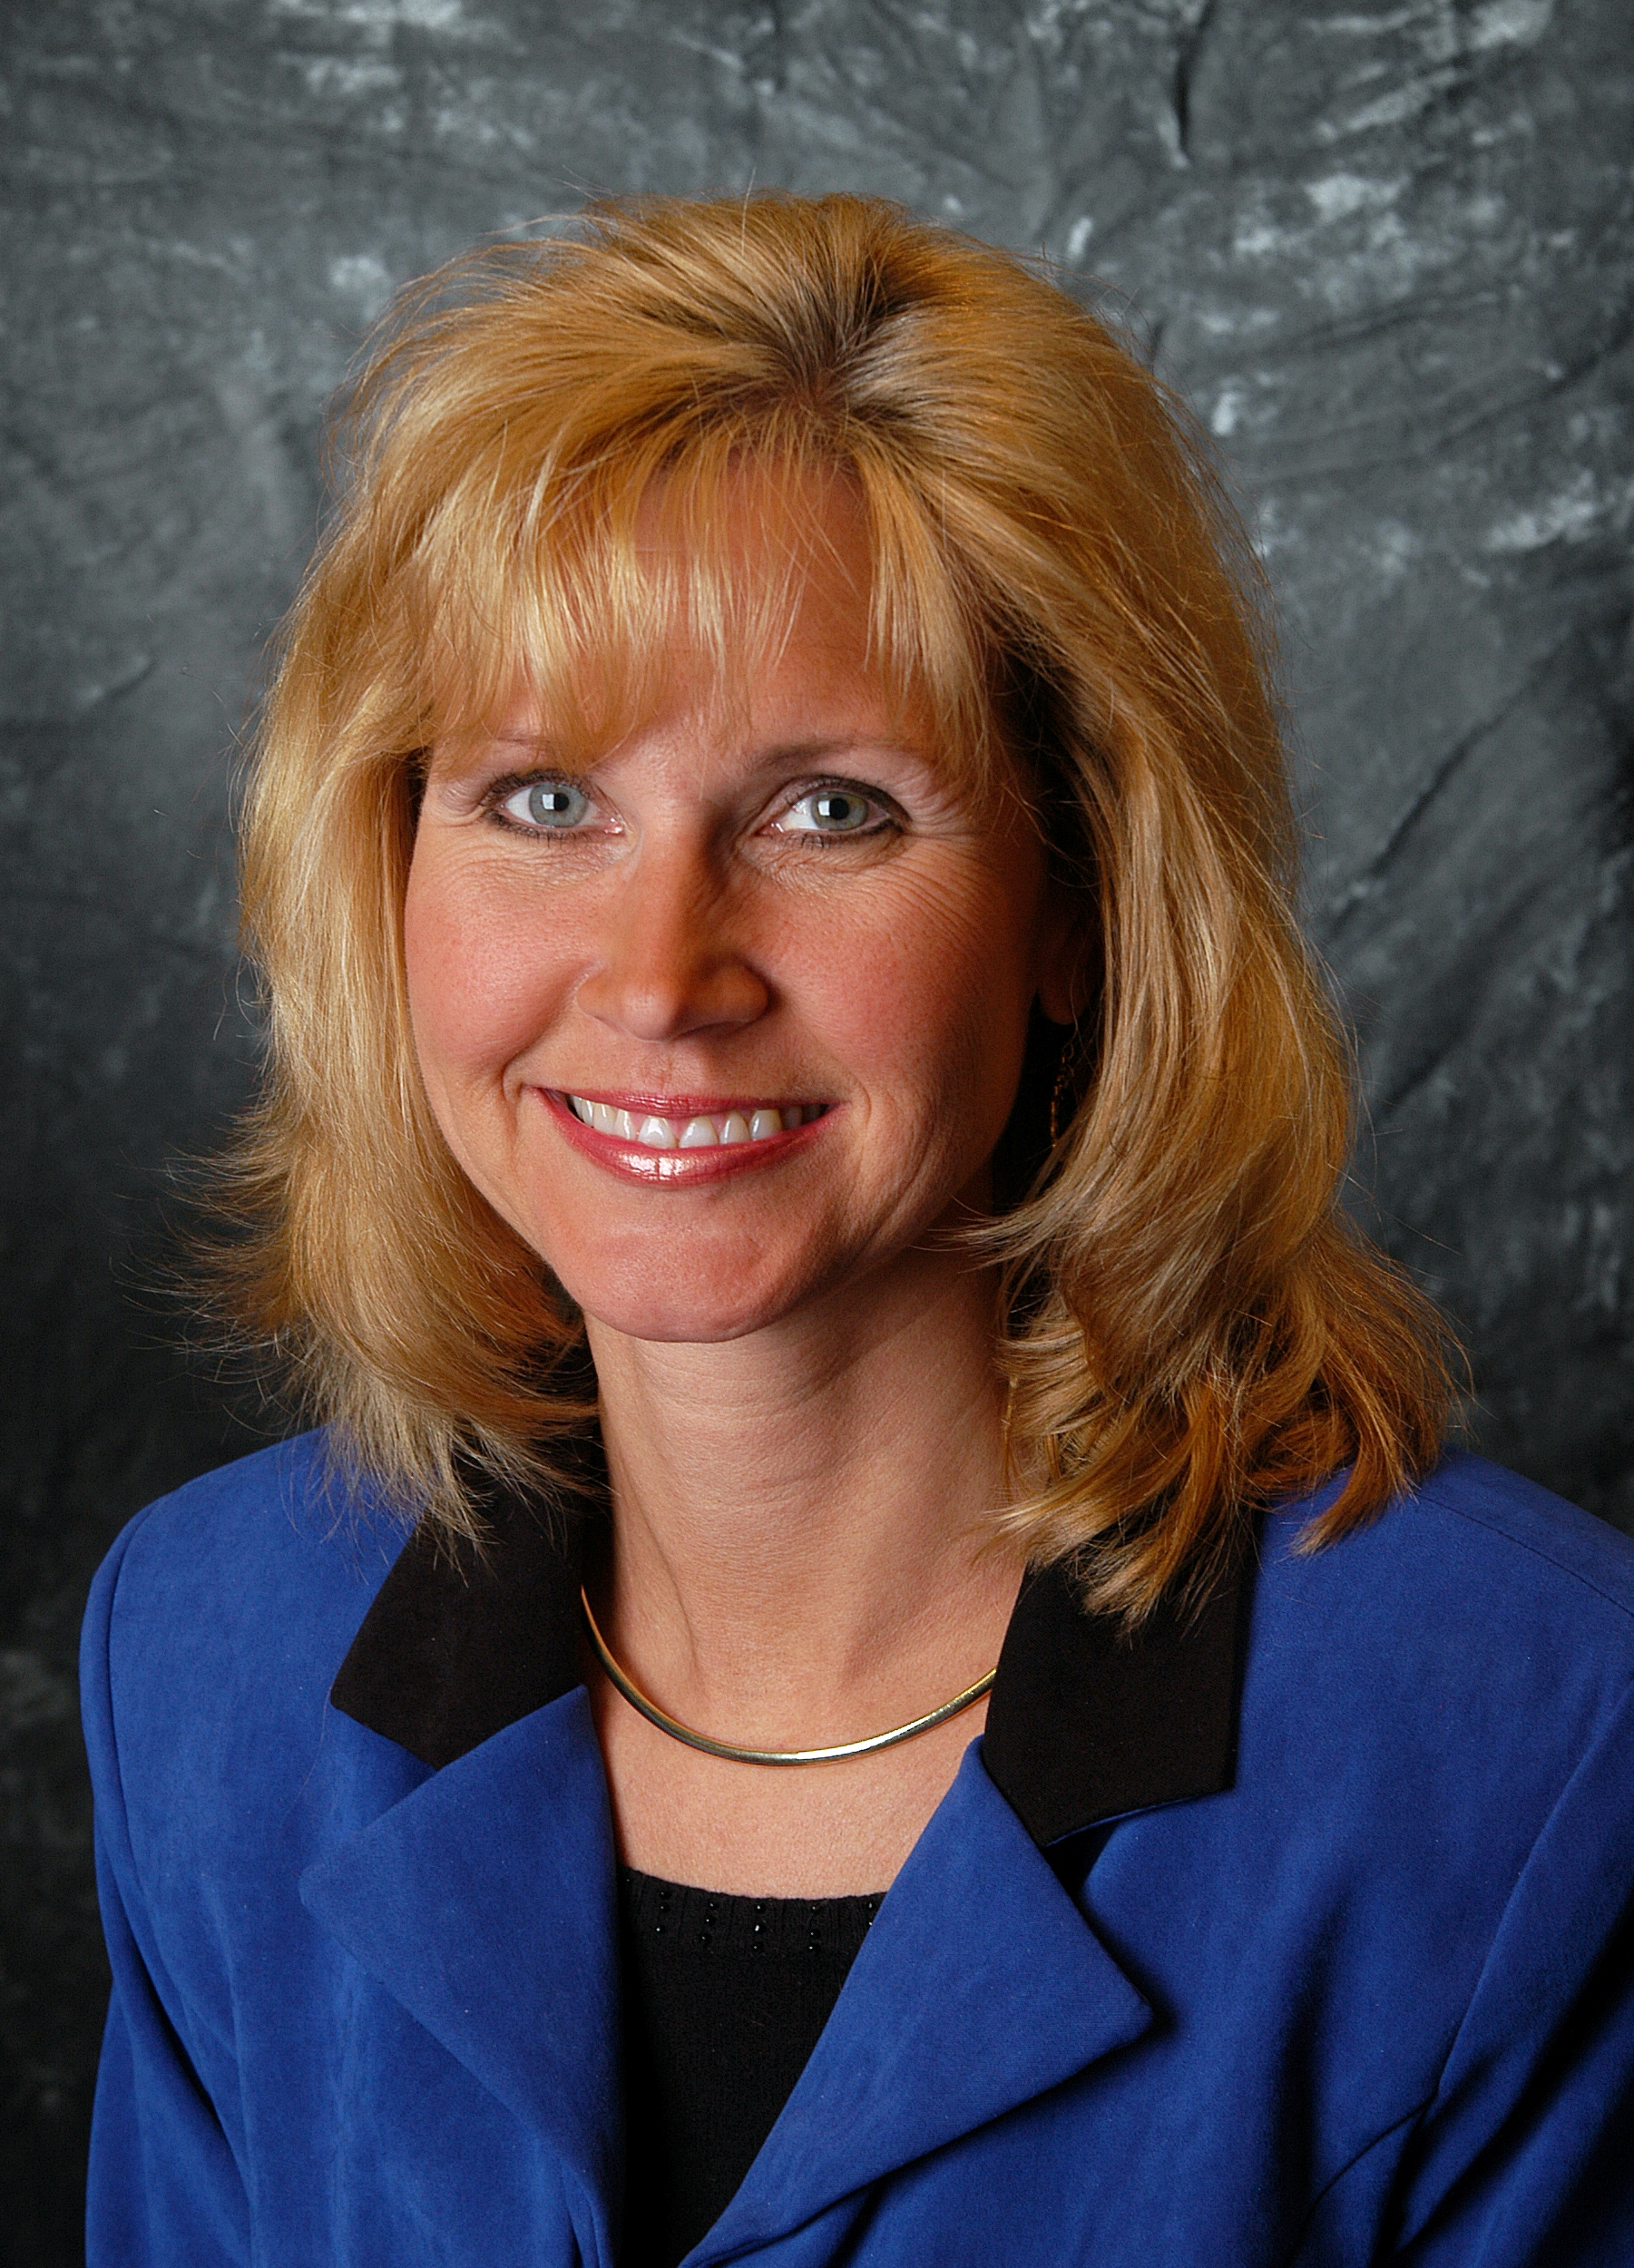 Nora Hauser, R&R Insurance